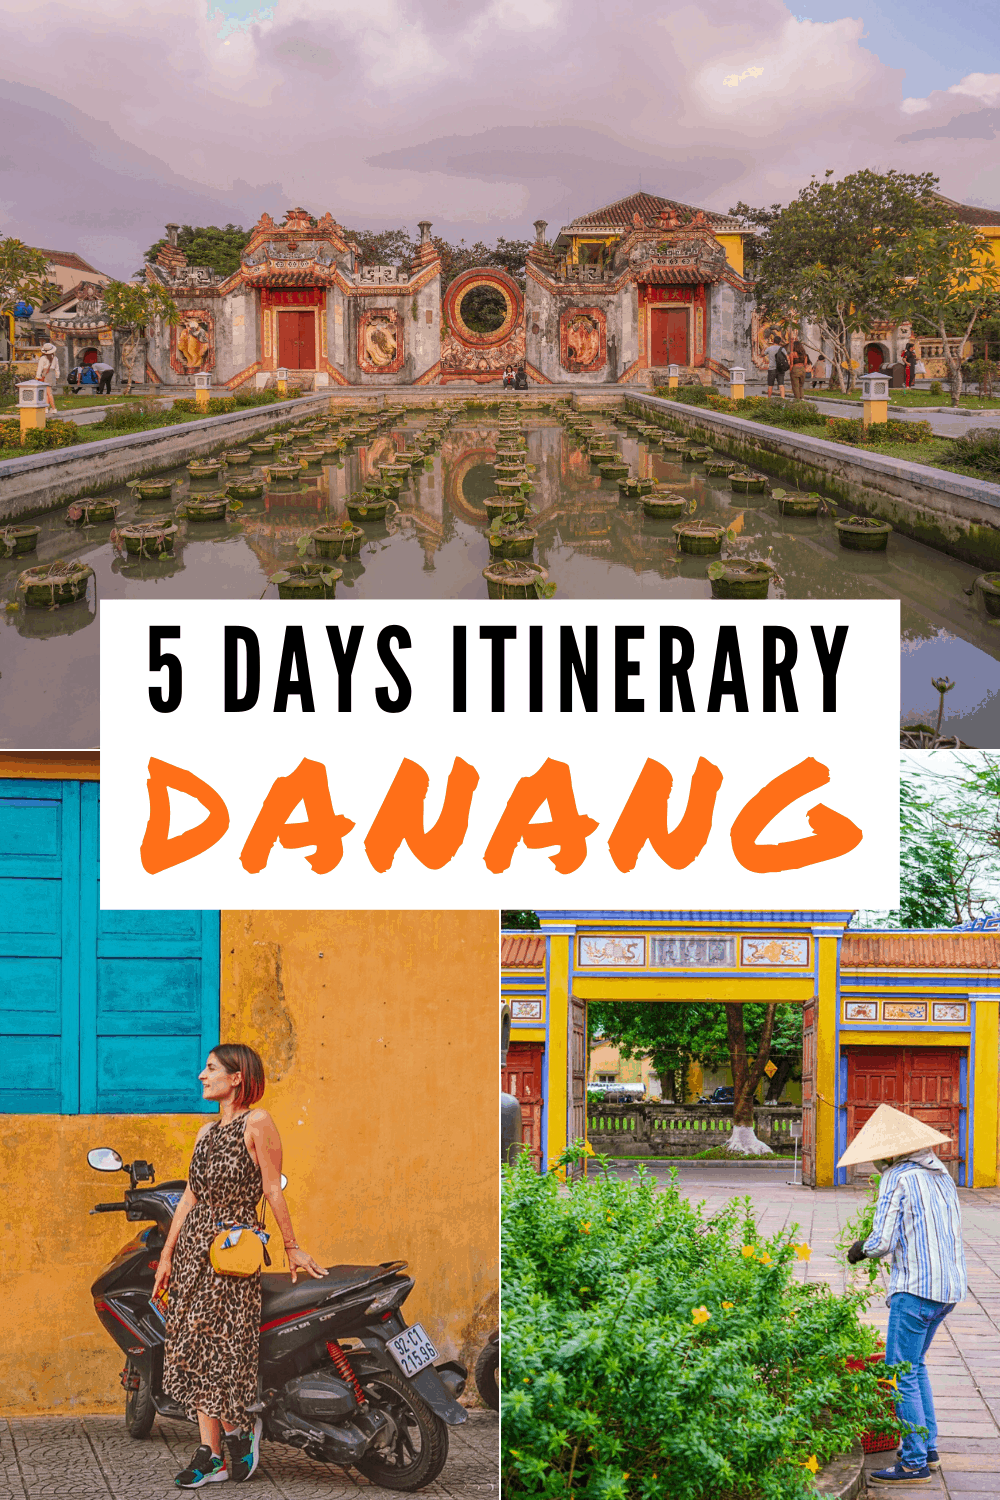 Day trips from Da Nang